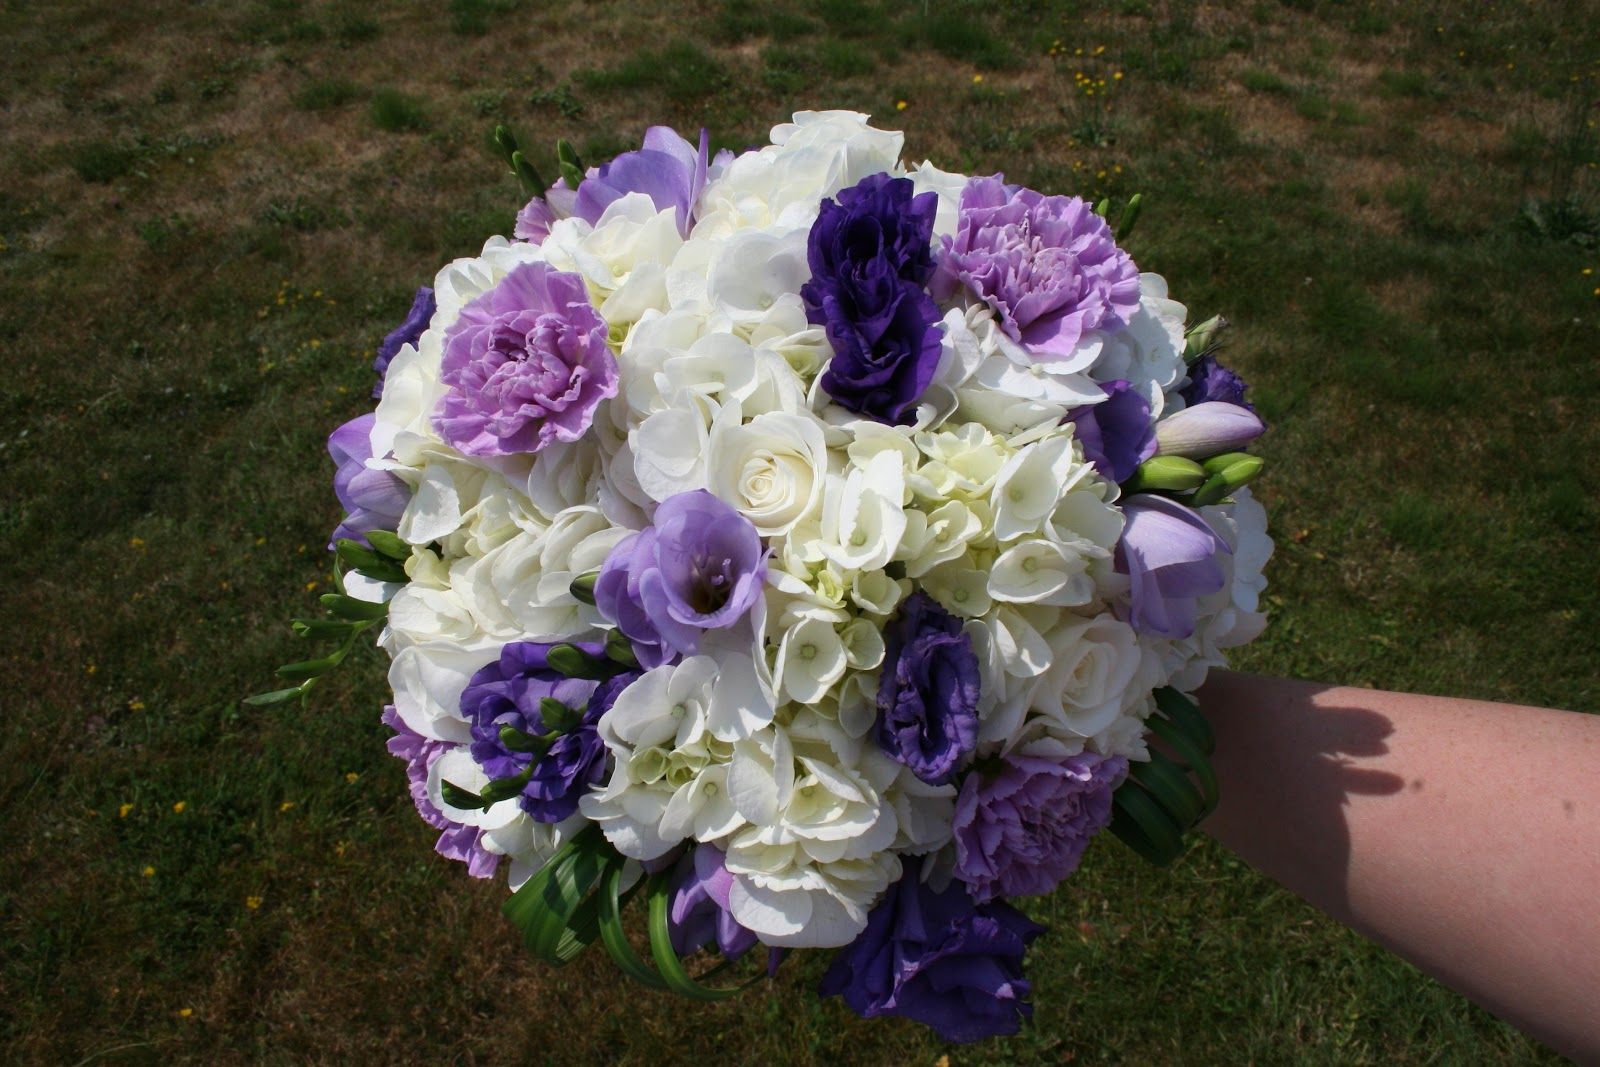 This beautiful bouquet was